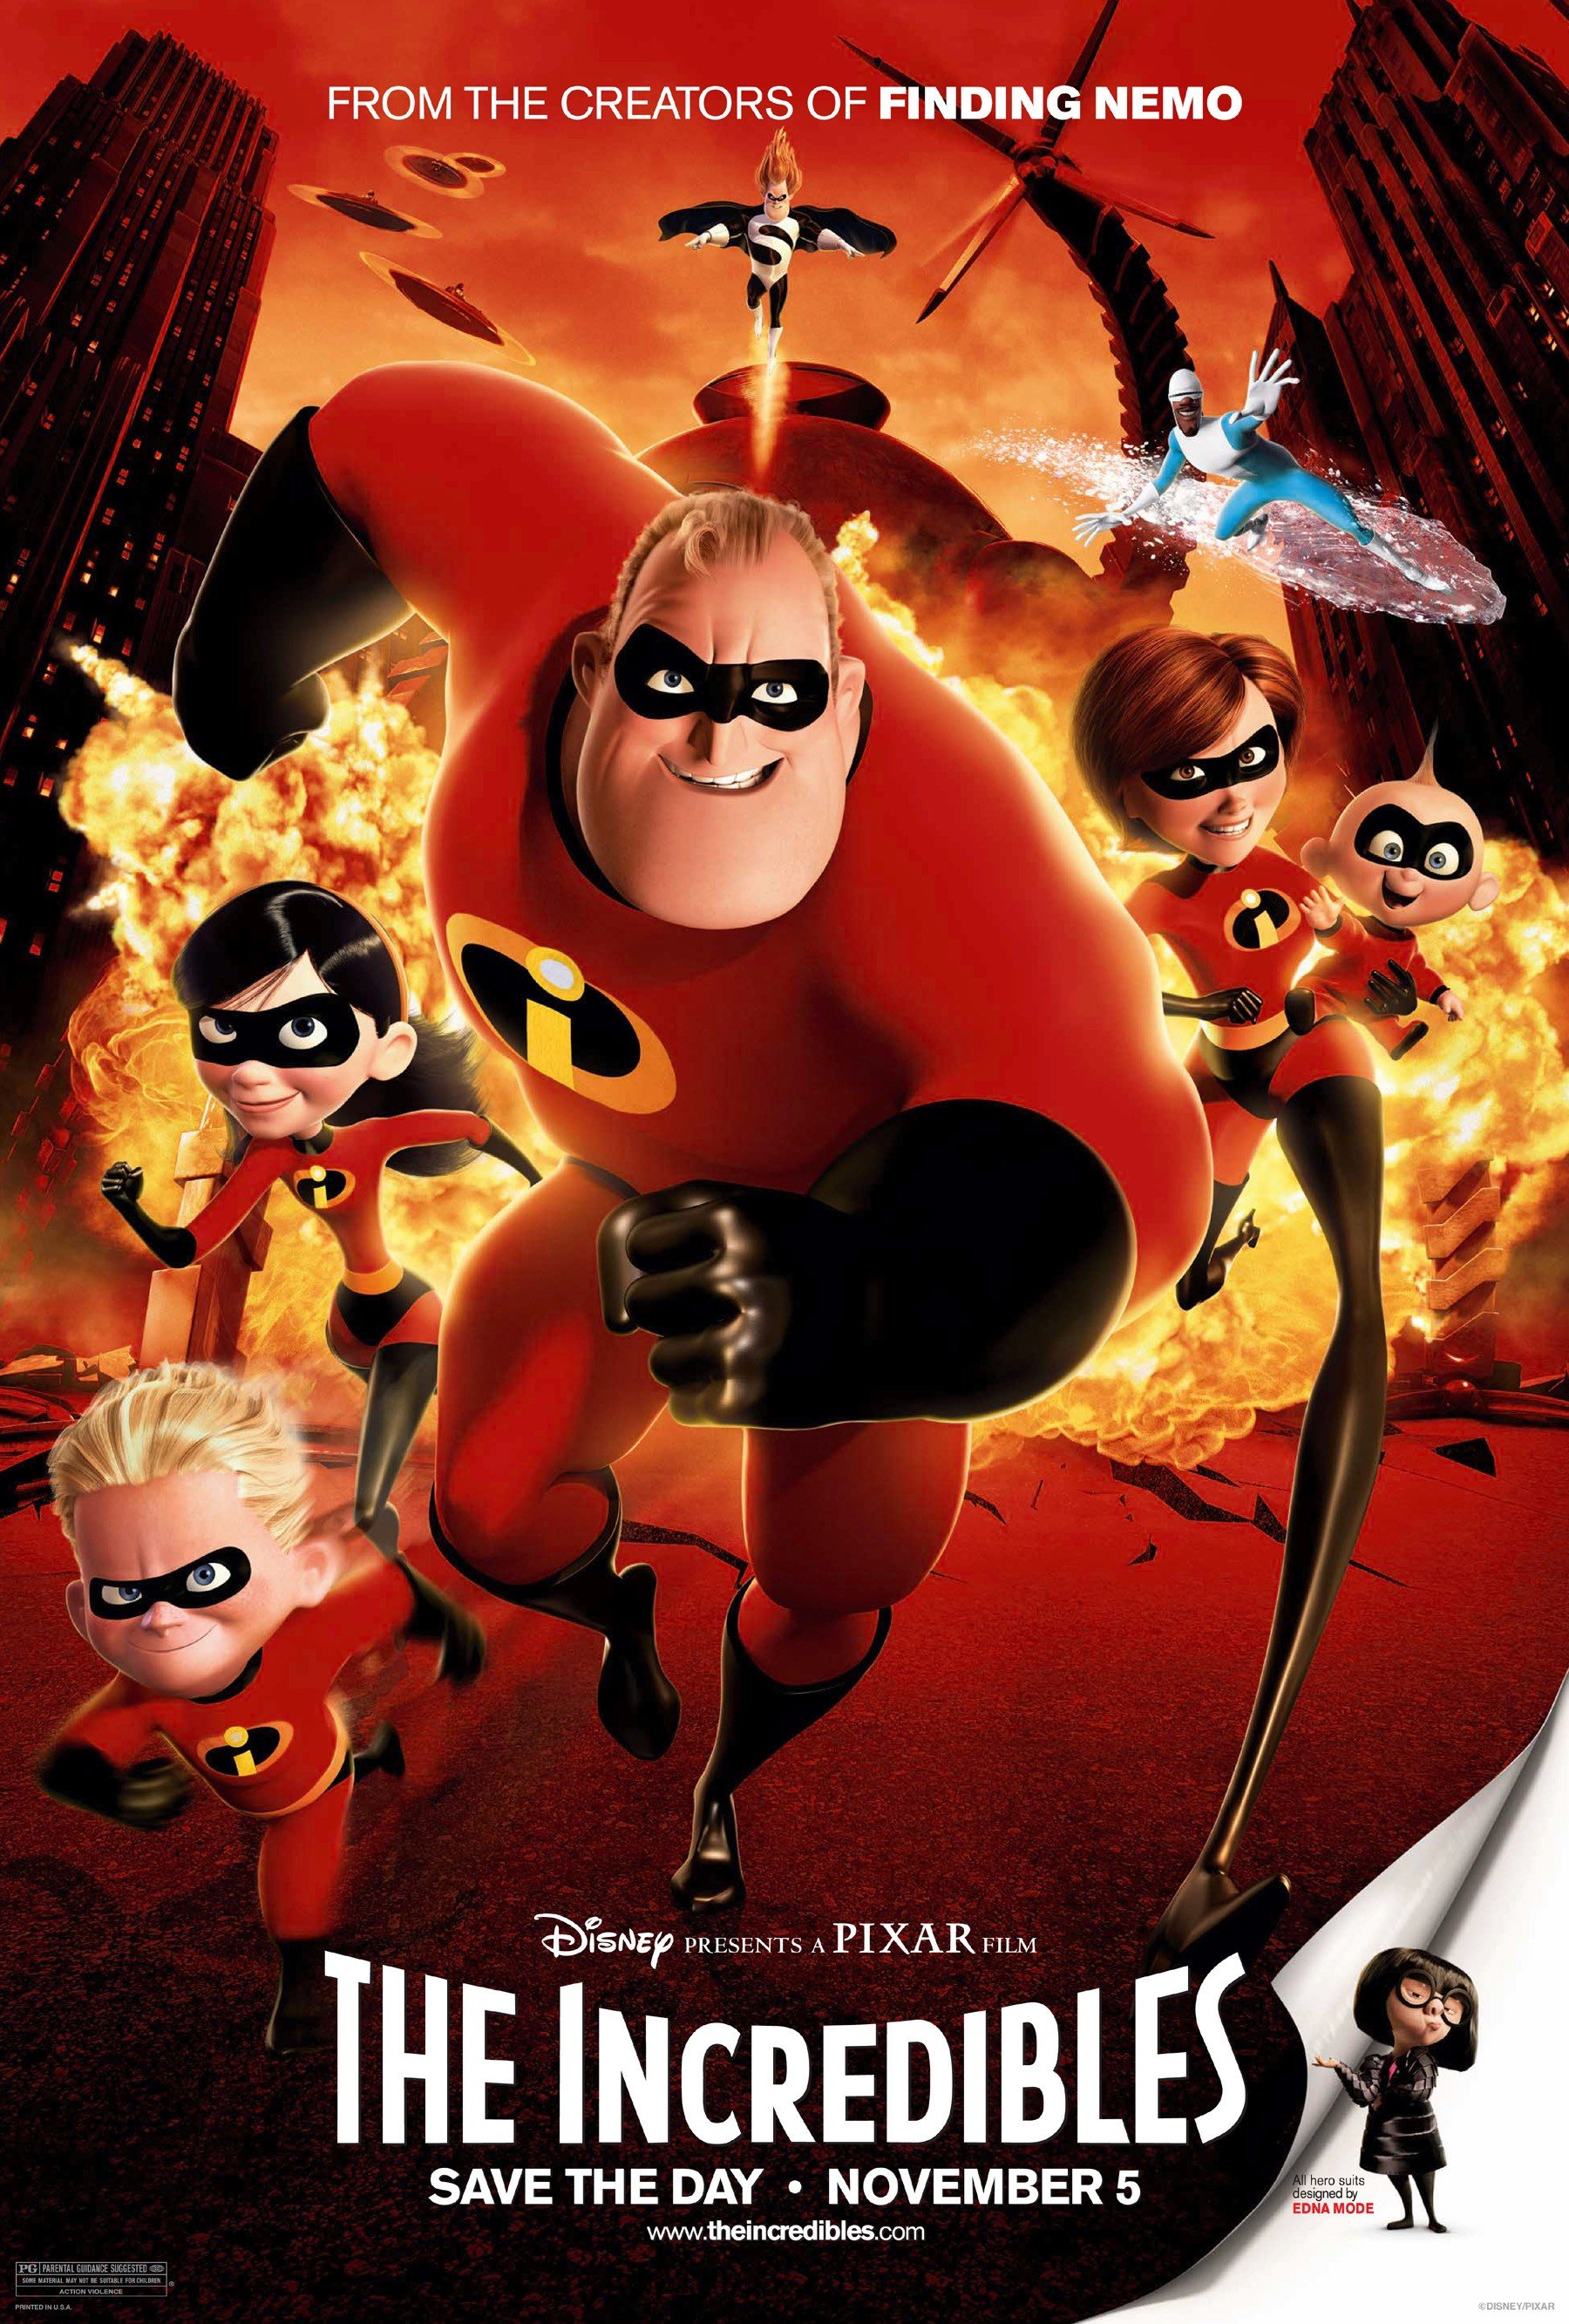 The Incredibles (2004) - Directed by: Brad BirdStarring: Craig T. Nelson, Holly Hunter, Samuel L. Jackson, Jason Lee, Spencer Fox, Sarah Vowell, Wallace Shwan, Brad BirdRated: PG for Action ViolenceRunning Time: 1 h 55 mTMM Score: 4.5 stars out of 5STRENGTHS: Story, Animation, Humor, Soundtrack, ExcitementWEAKNESSES: A Few Small Plot Holes